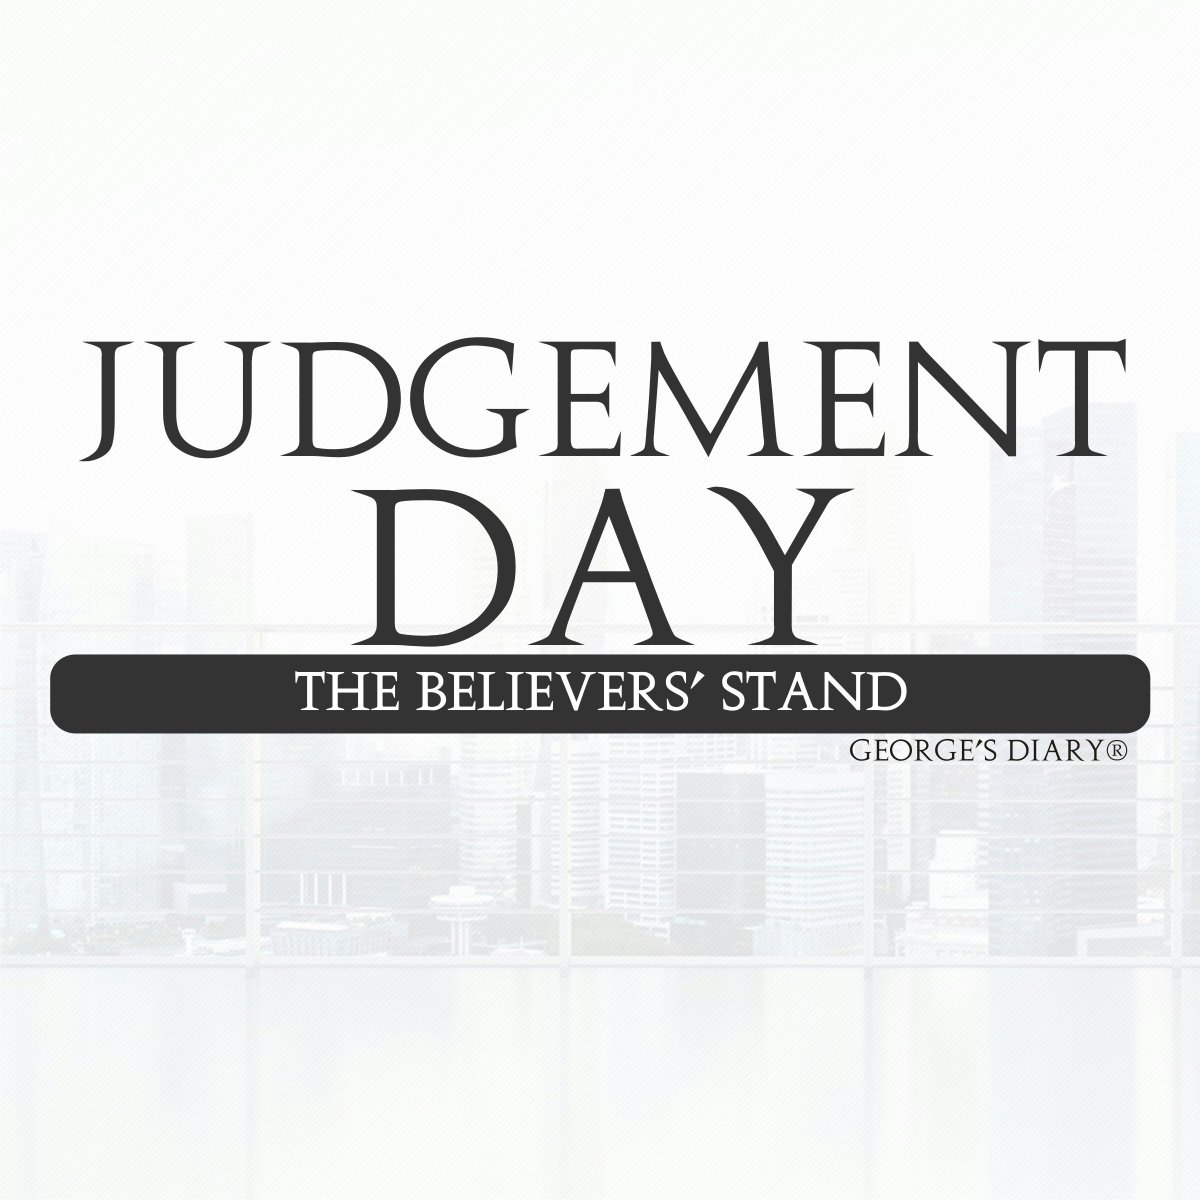 THE BELIEVERS' STAND | The Believers' Stand